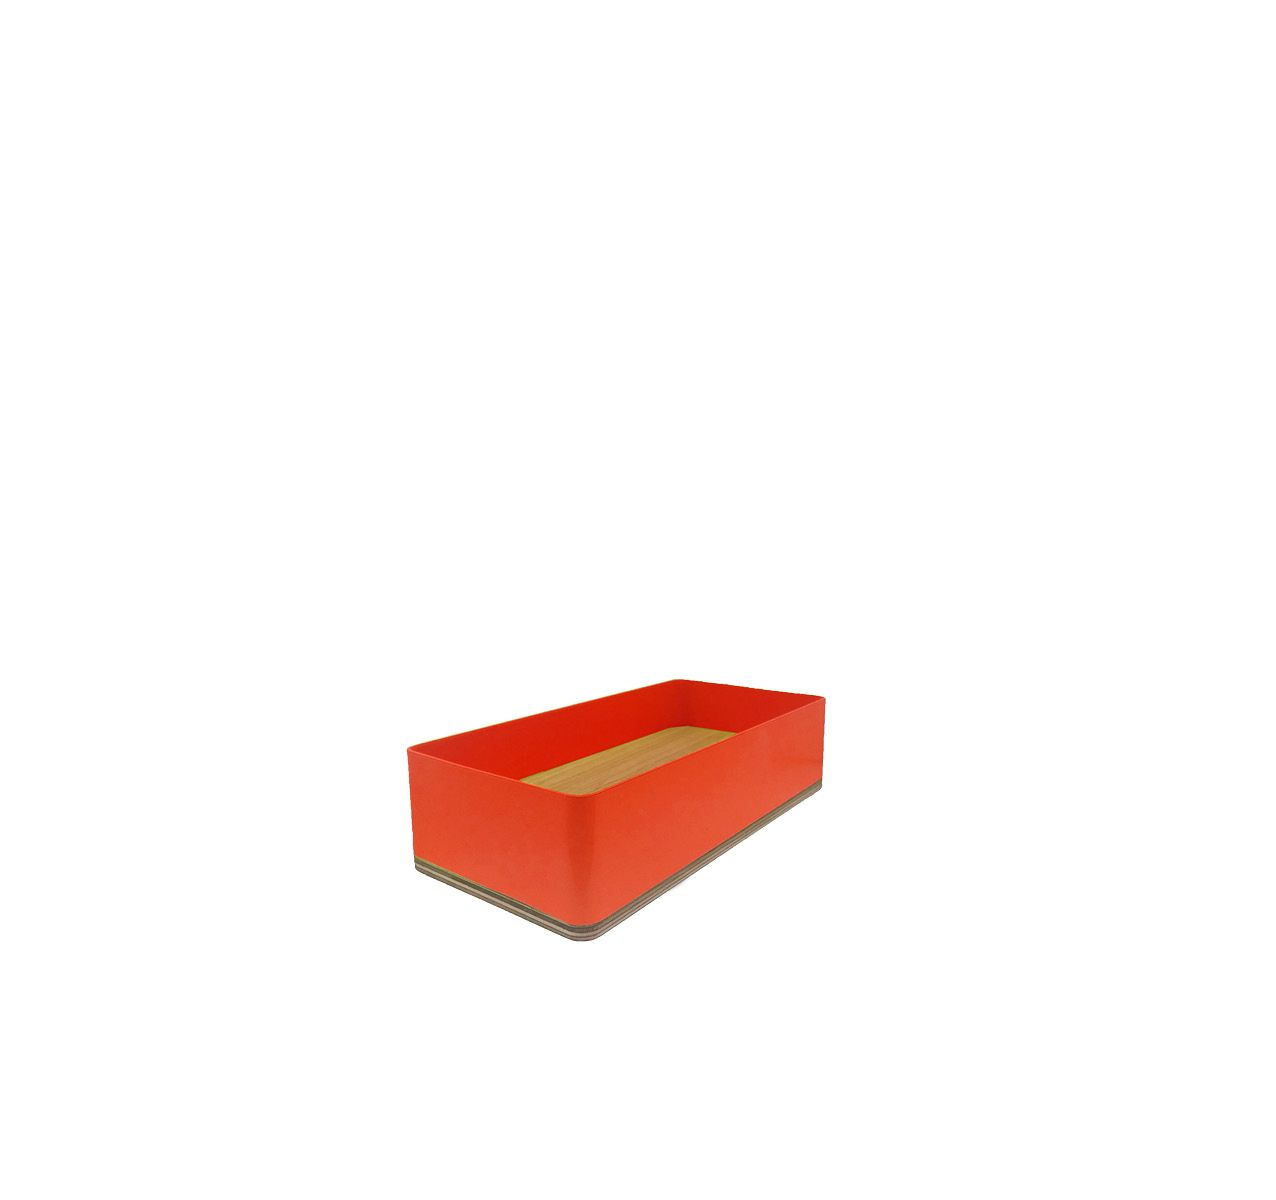 portable atelier fluorescent orange penholder - фото